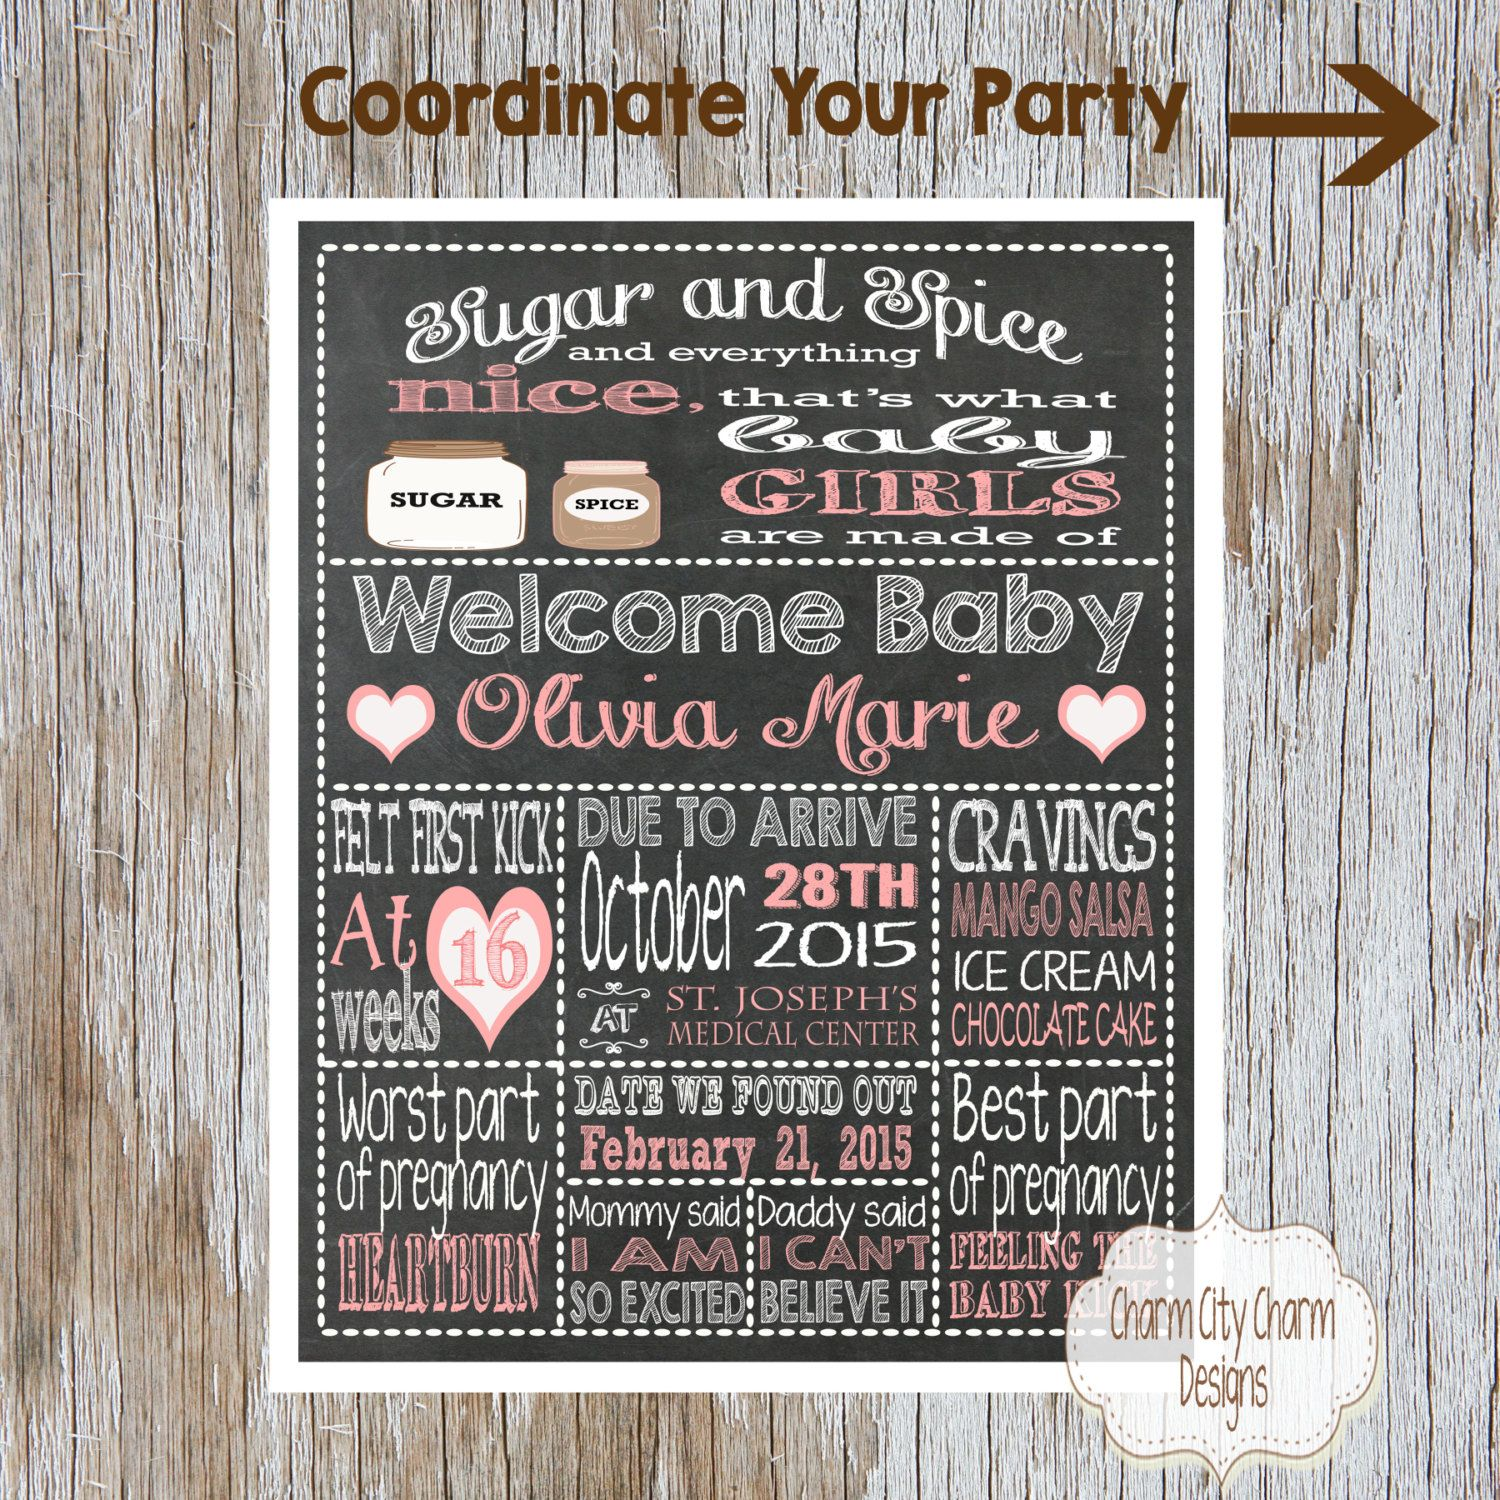 baby shower invitation wording for bringing diapers%0A Baby Shower Chalkboard Sign  MommyToBe Chalkboard Sign  Baby  Announcement  Baby Shower Decor  DIY Printable  MTB